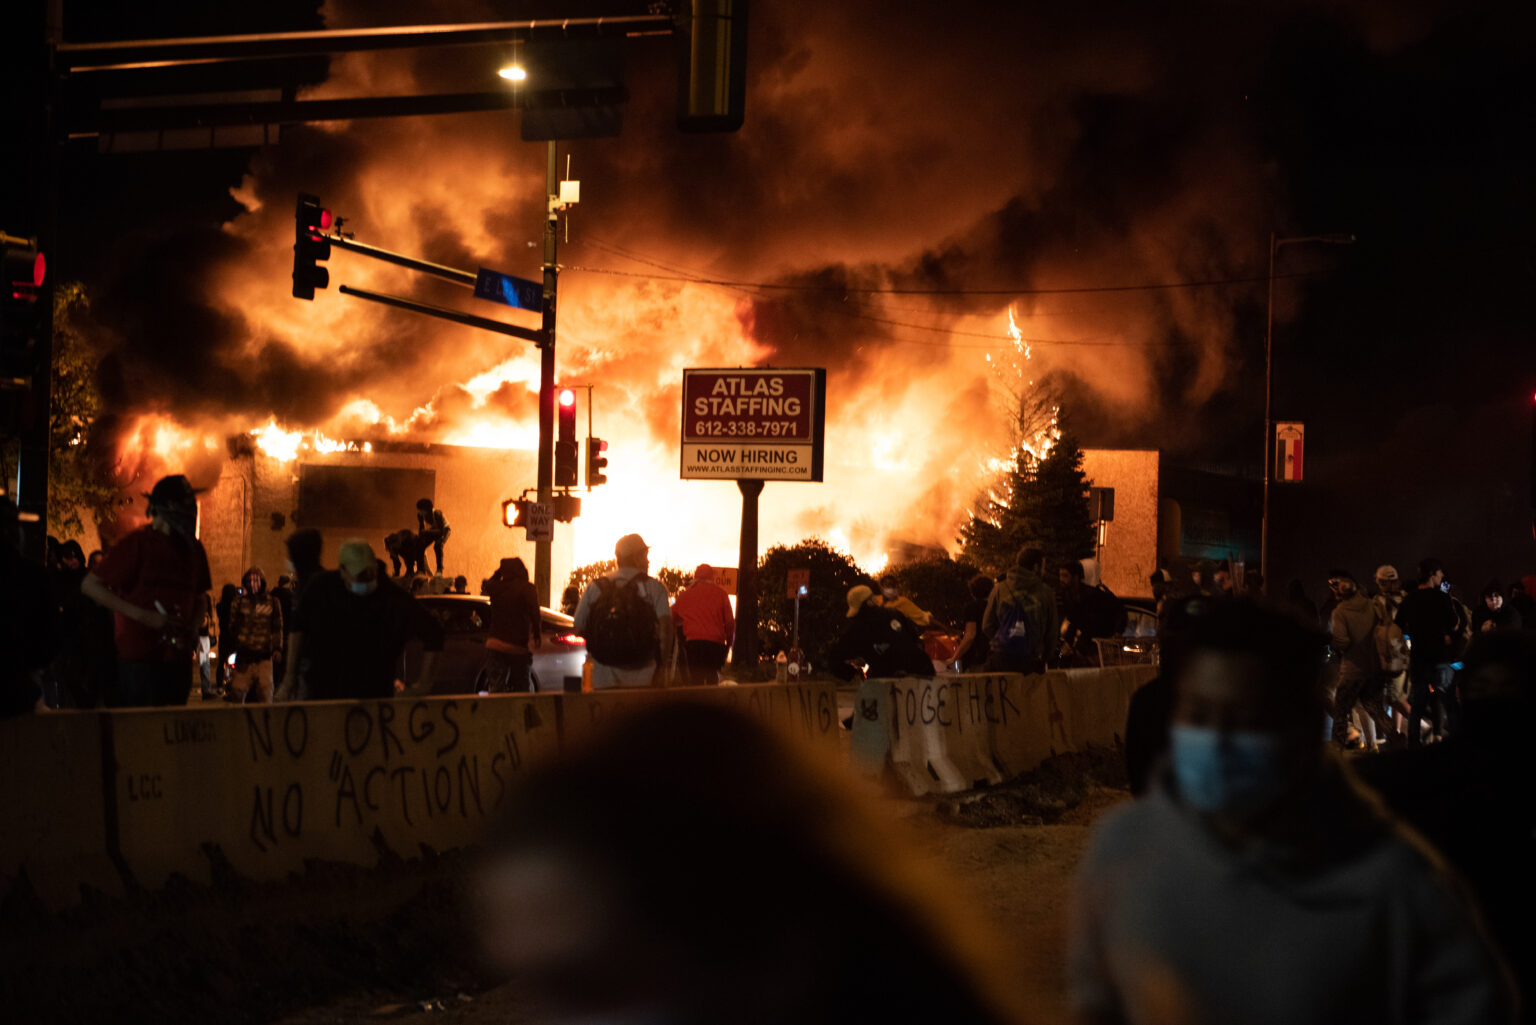 Building burning in Minneapolis on May 29, 2020, during George Floyd protests. (Hungryogrephotos, CC0, Wikimedia Commons)